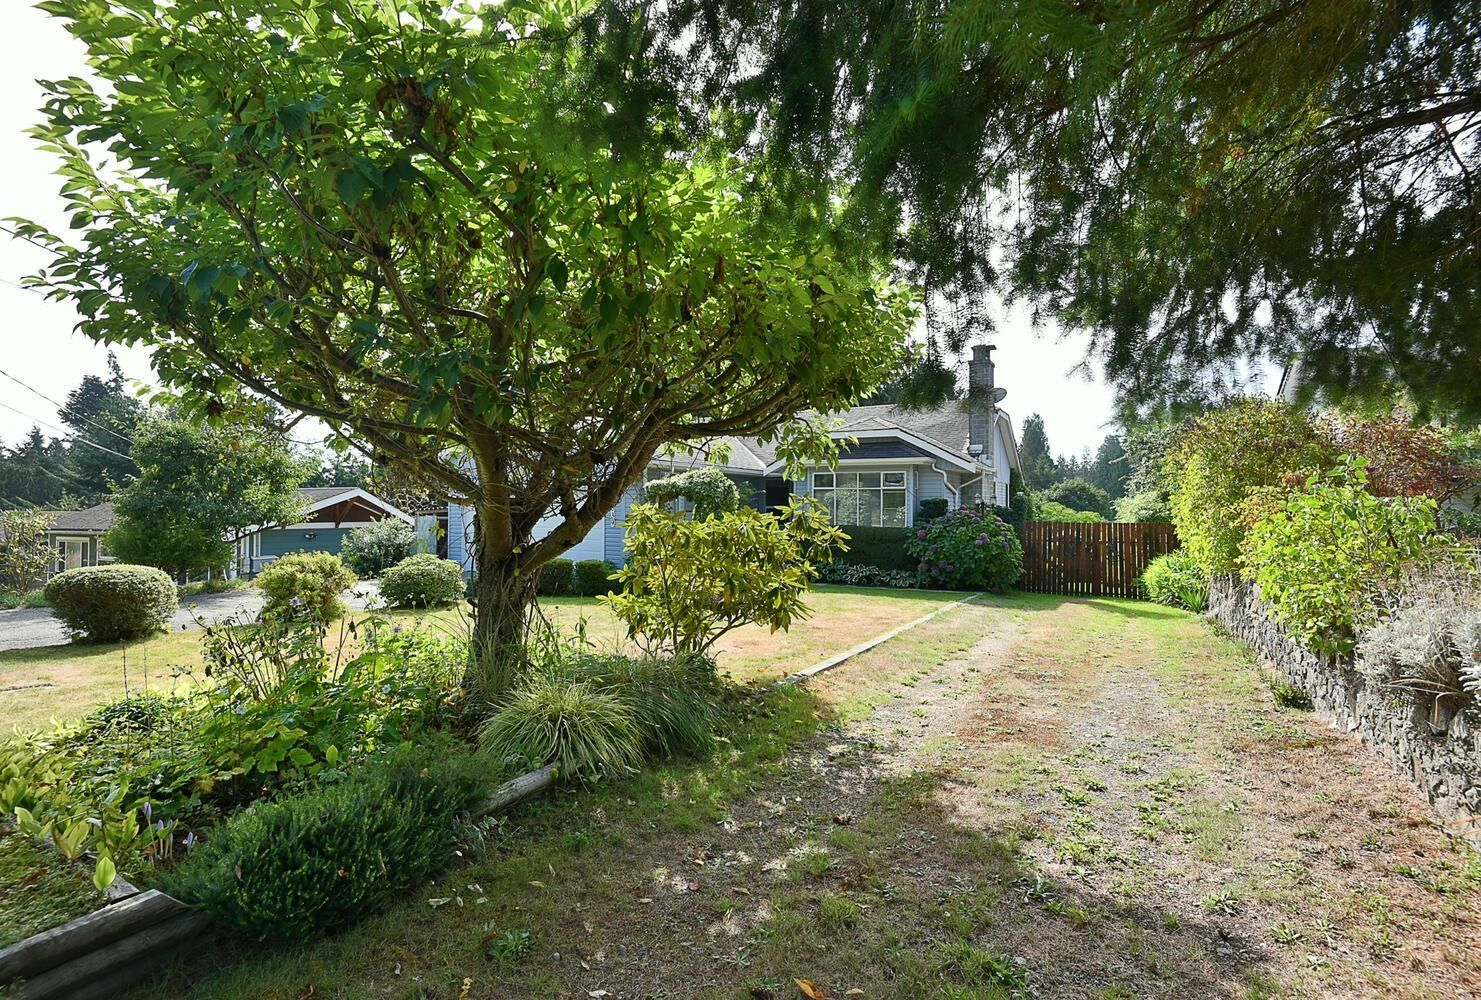 Great neighbourhood, rural setting but still close to schools, shopping and just a quick drive to ferries.